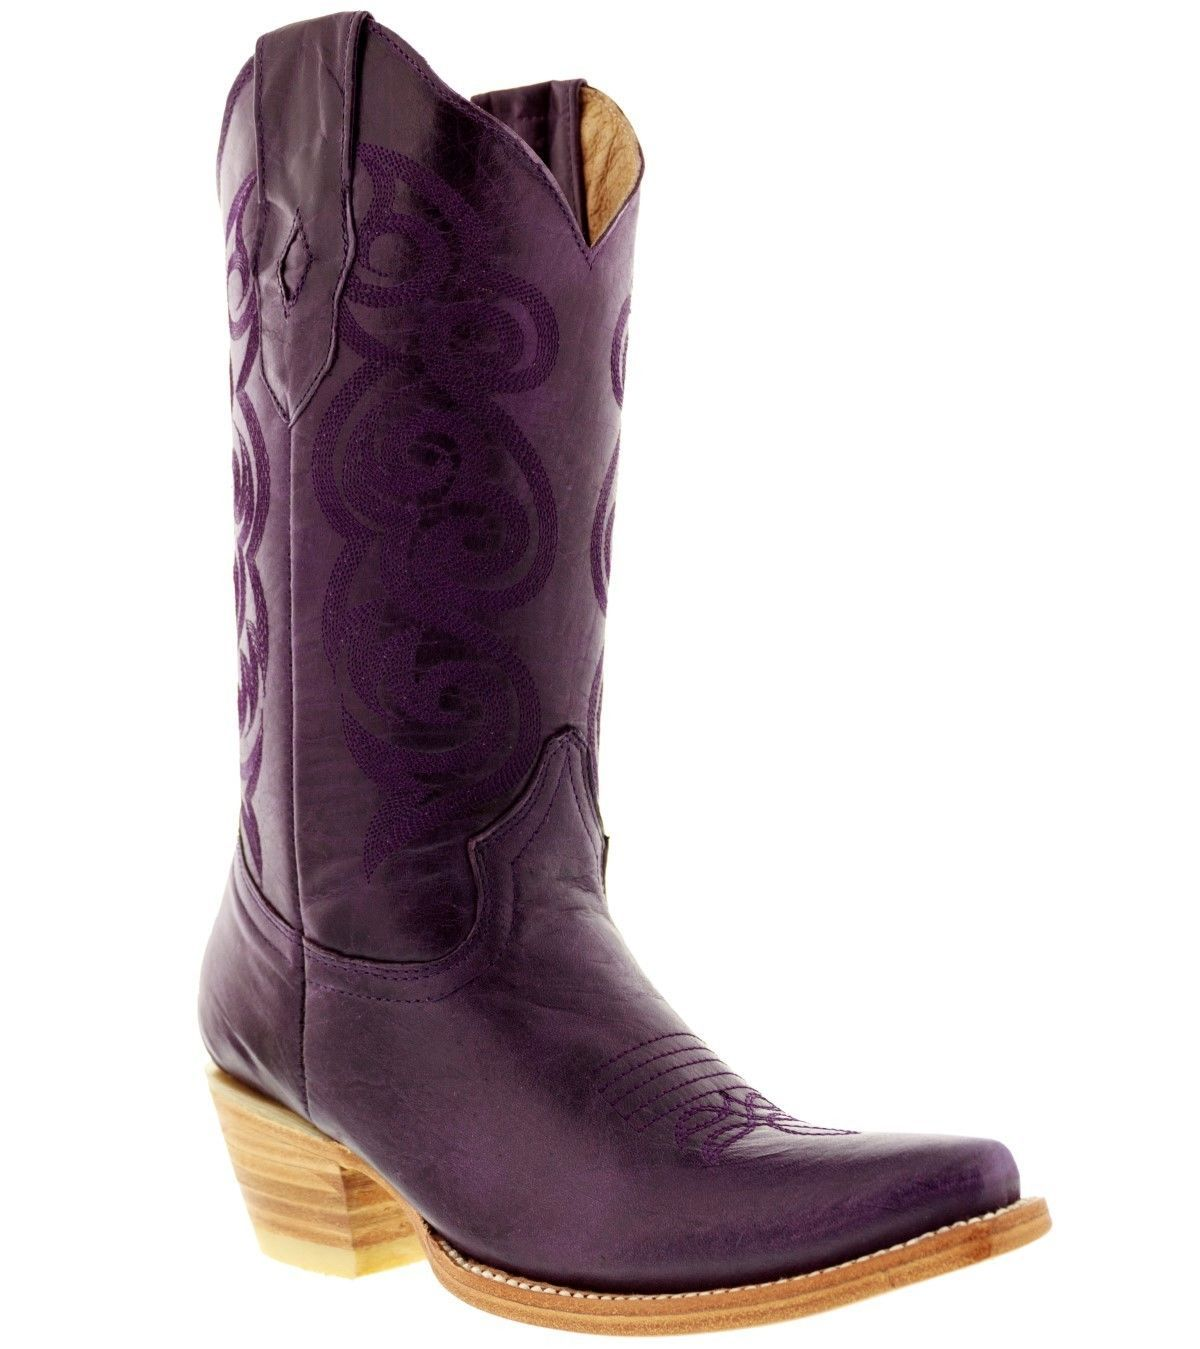 women's caroline purple western leather cowboy boots rodeo cowgirl ladies riding - €106,30 EUR